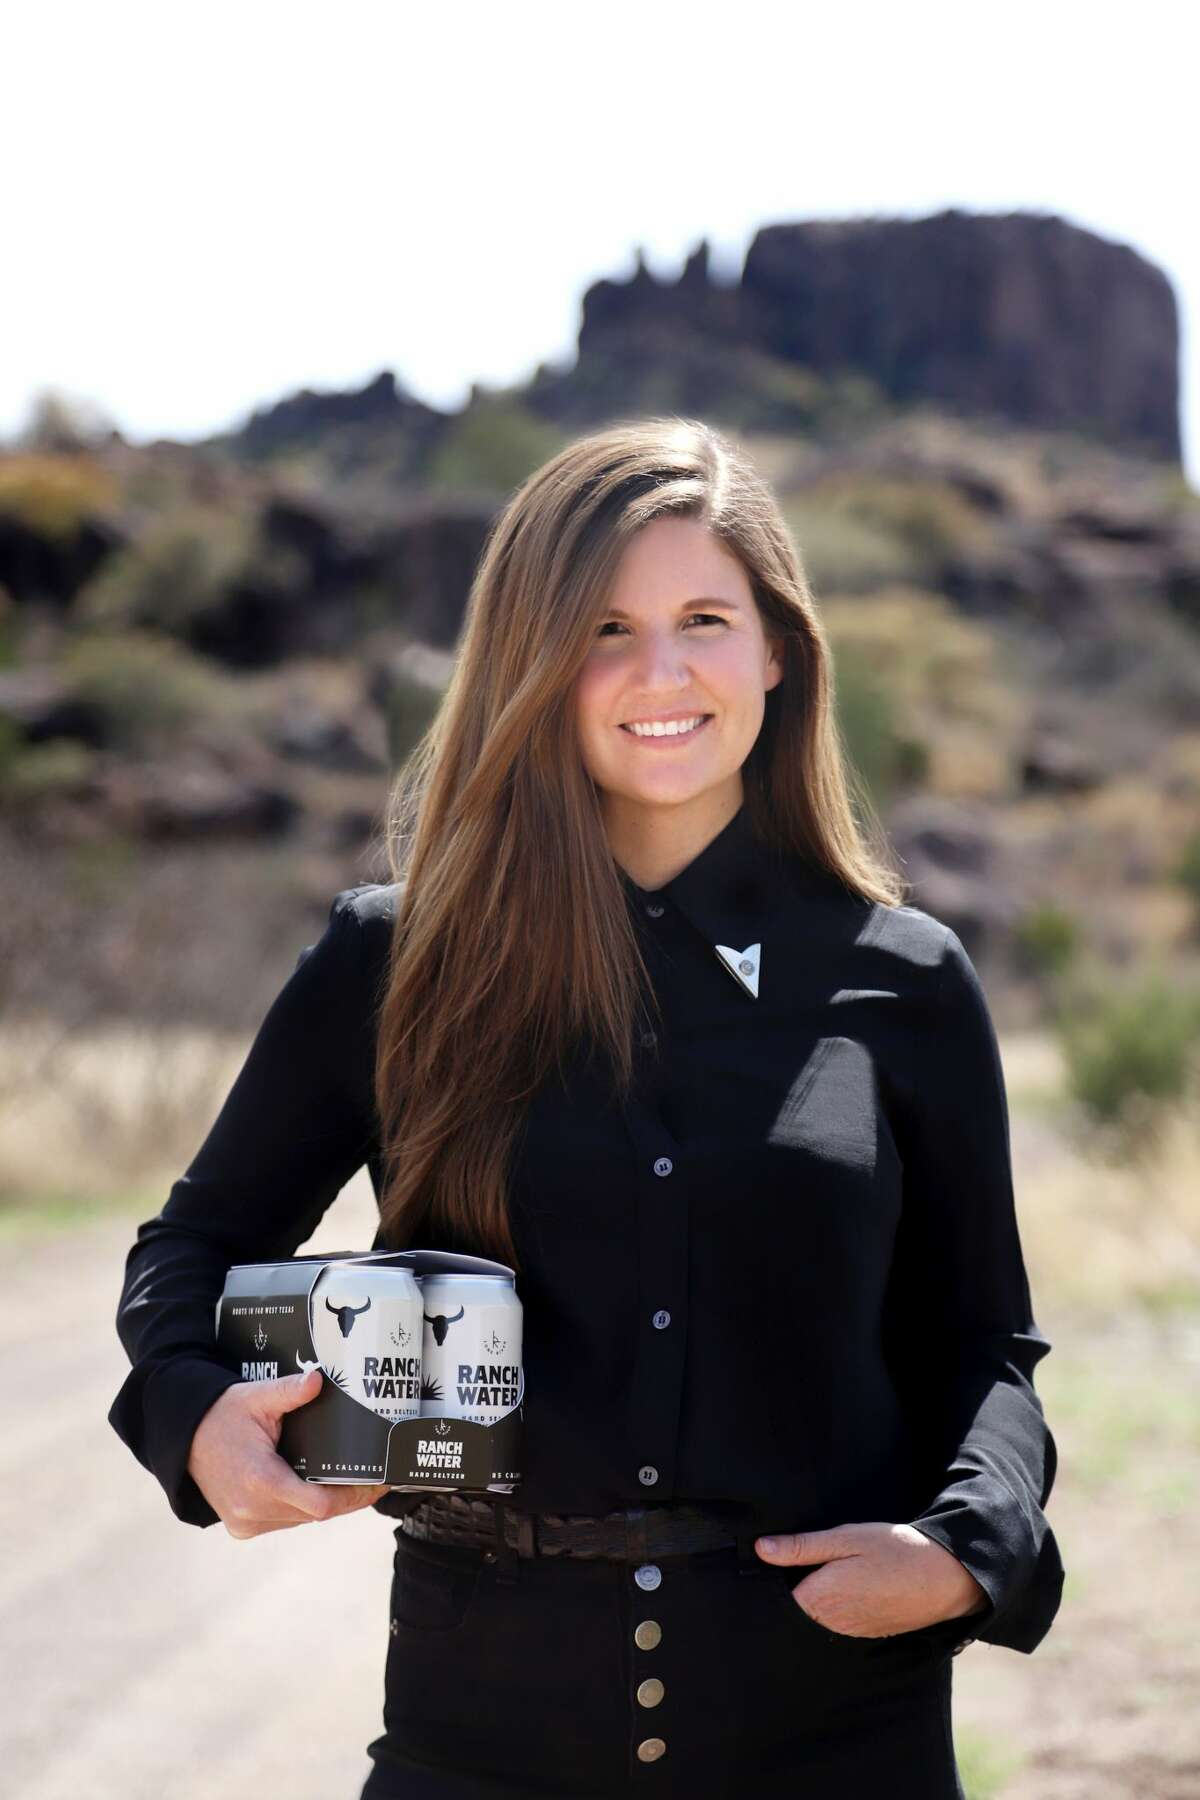 Lone River Ranch Water founder and CEO Katie Beal Brown. Travis Hallmark